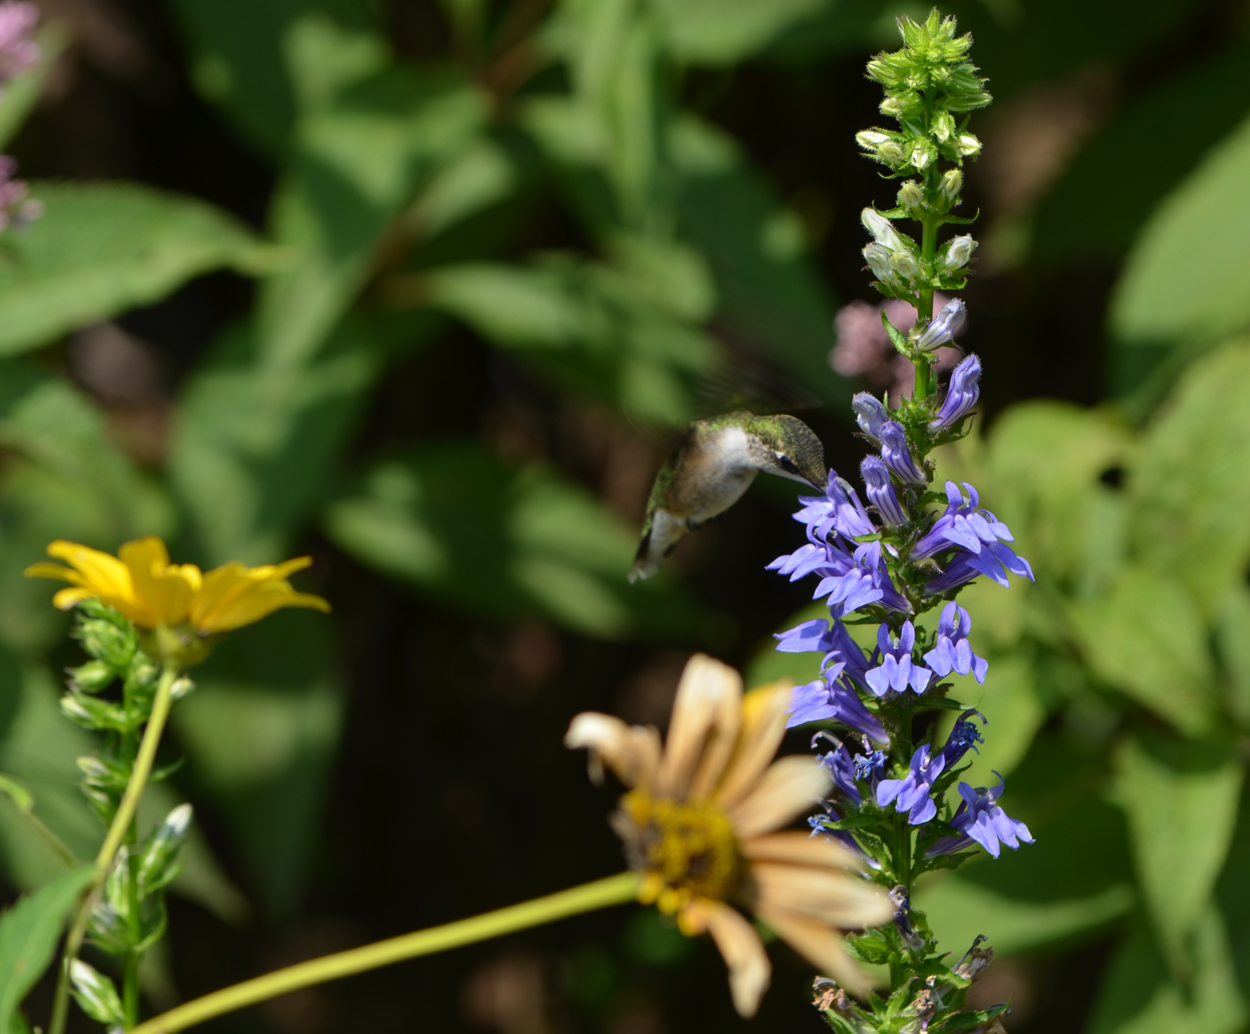 National pollinator week lewis ginter botanical garden a hummingbird drinking from and pollinating a blue cardinal flower photo by jonah izmirmasajfo Images